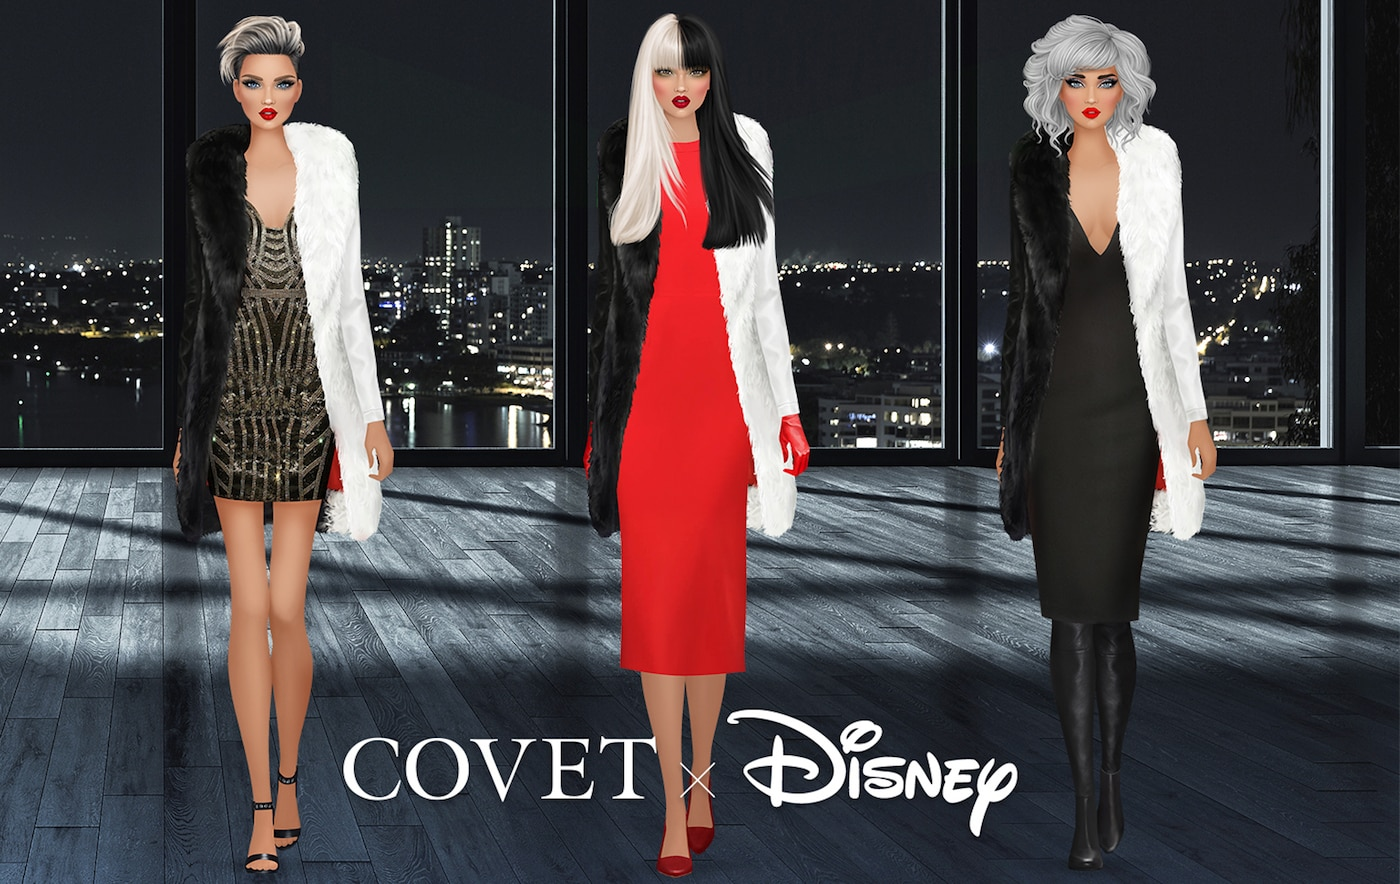 Three different outfit inspirations for Cruella de Vil